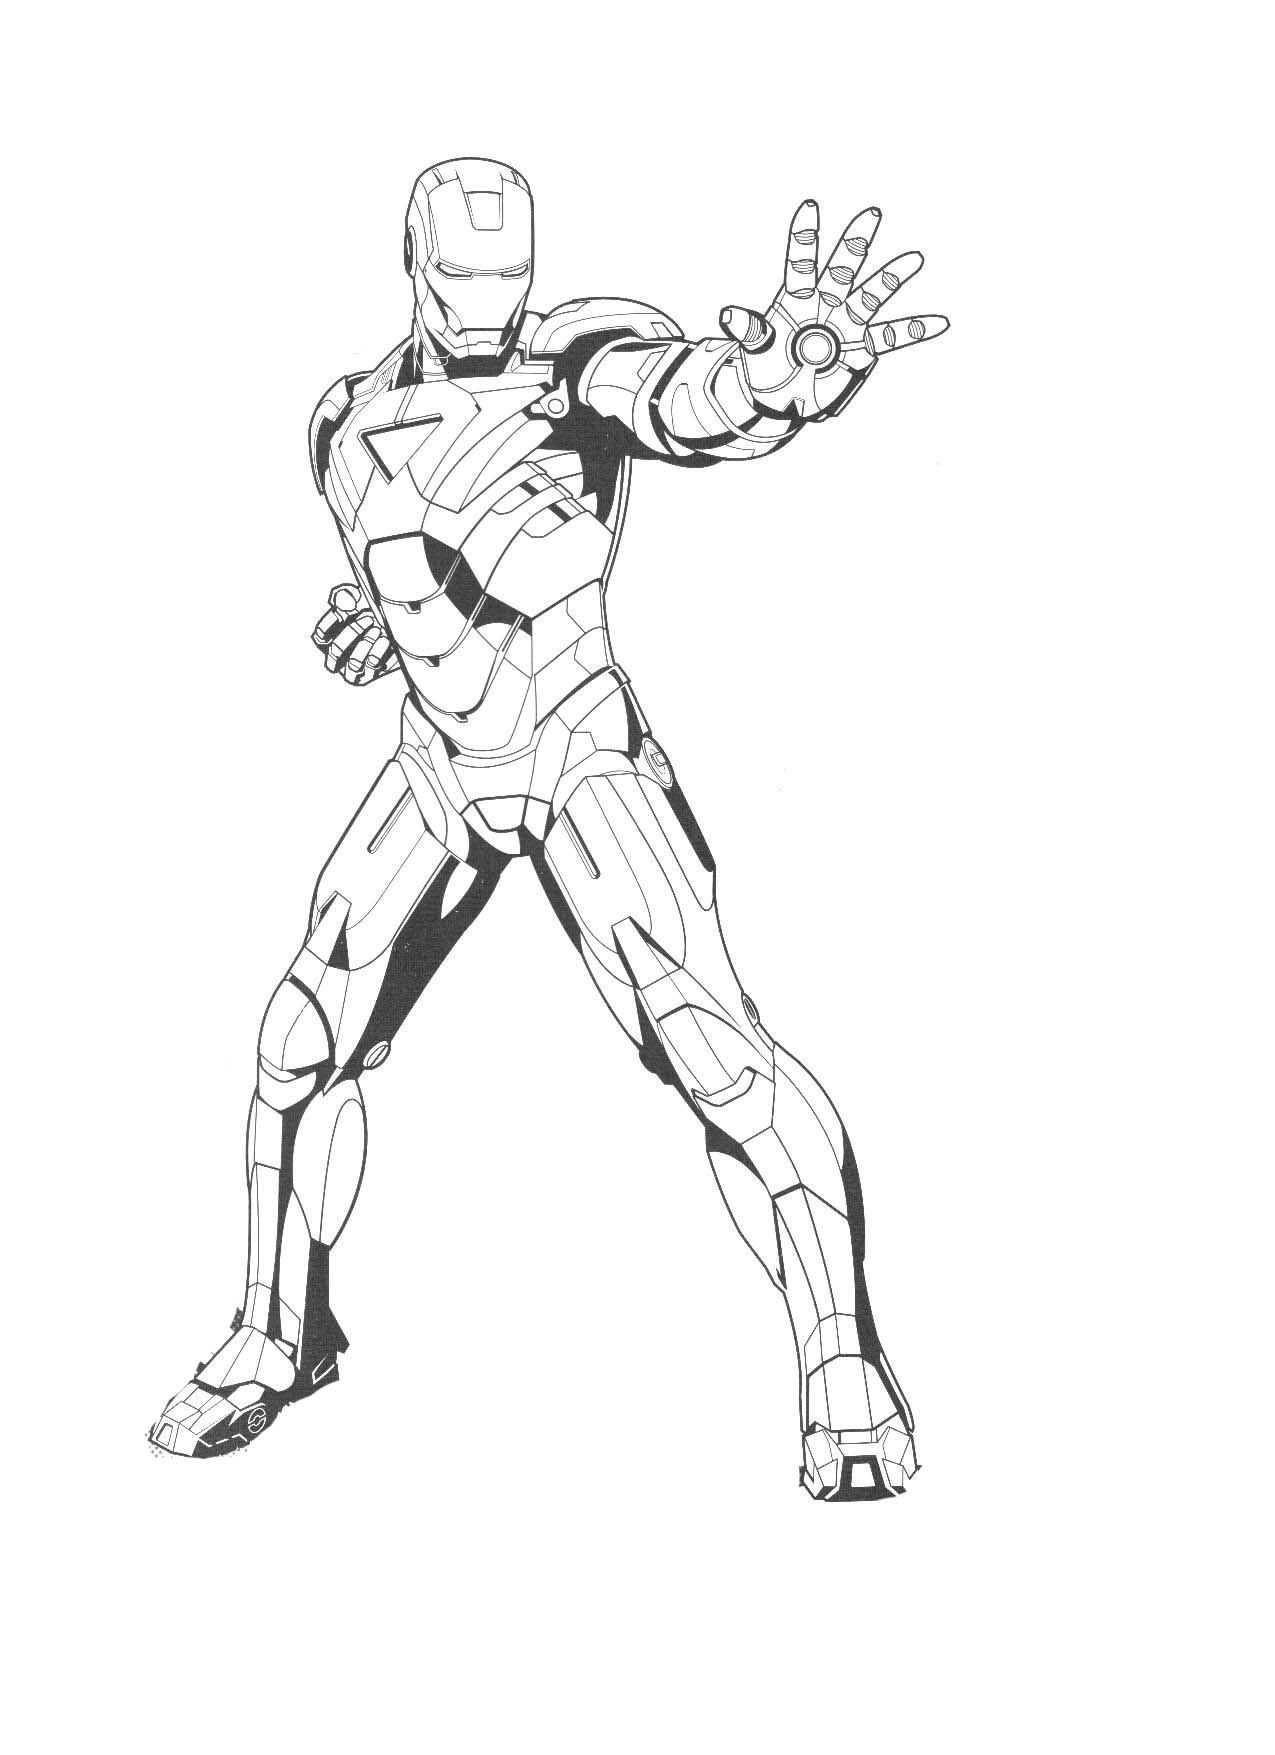 iron man coloring pages getcoloringpages avengers kleurplaat stop the enemy coloring page minecraft piano her keywords suggestions - Iron Man Coloring Pages Mark